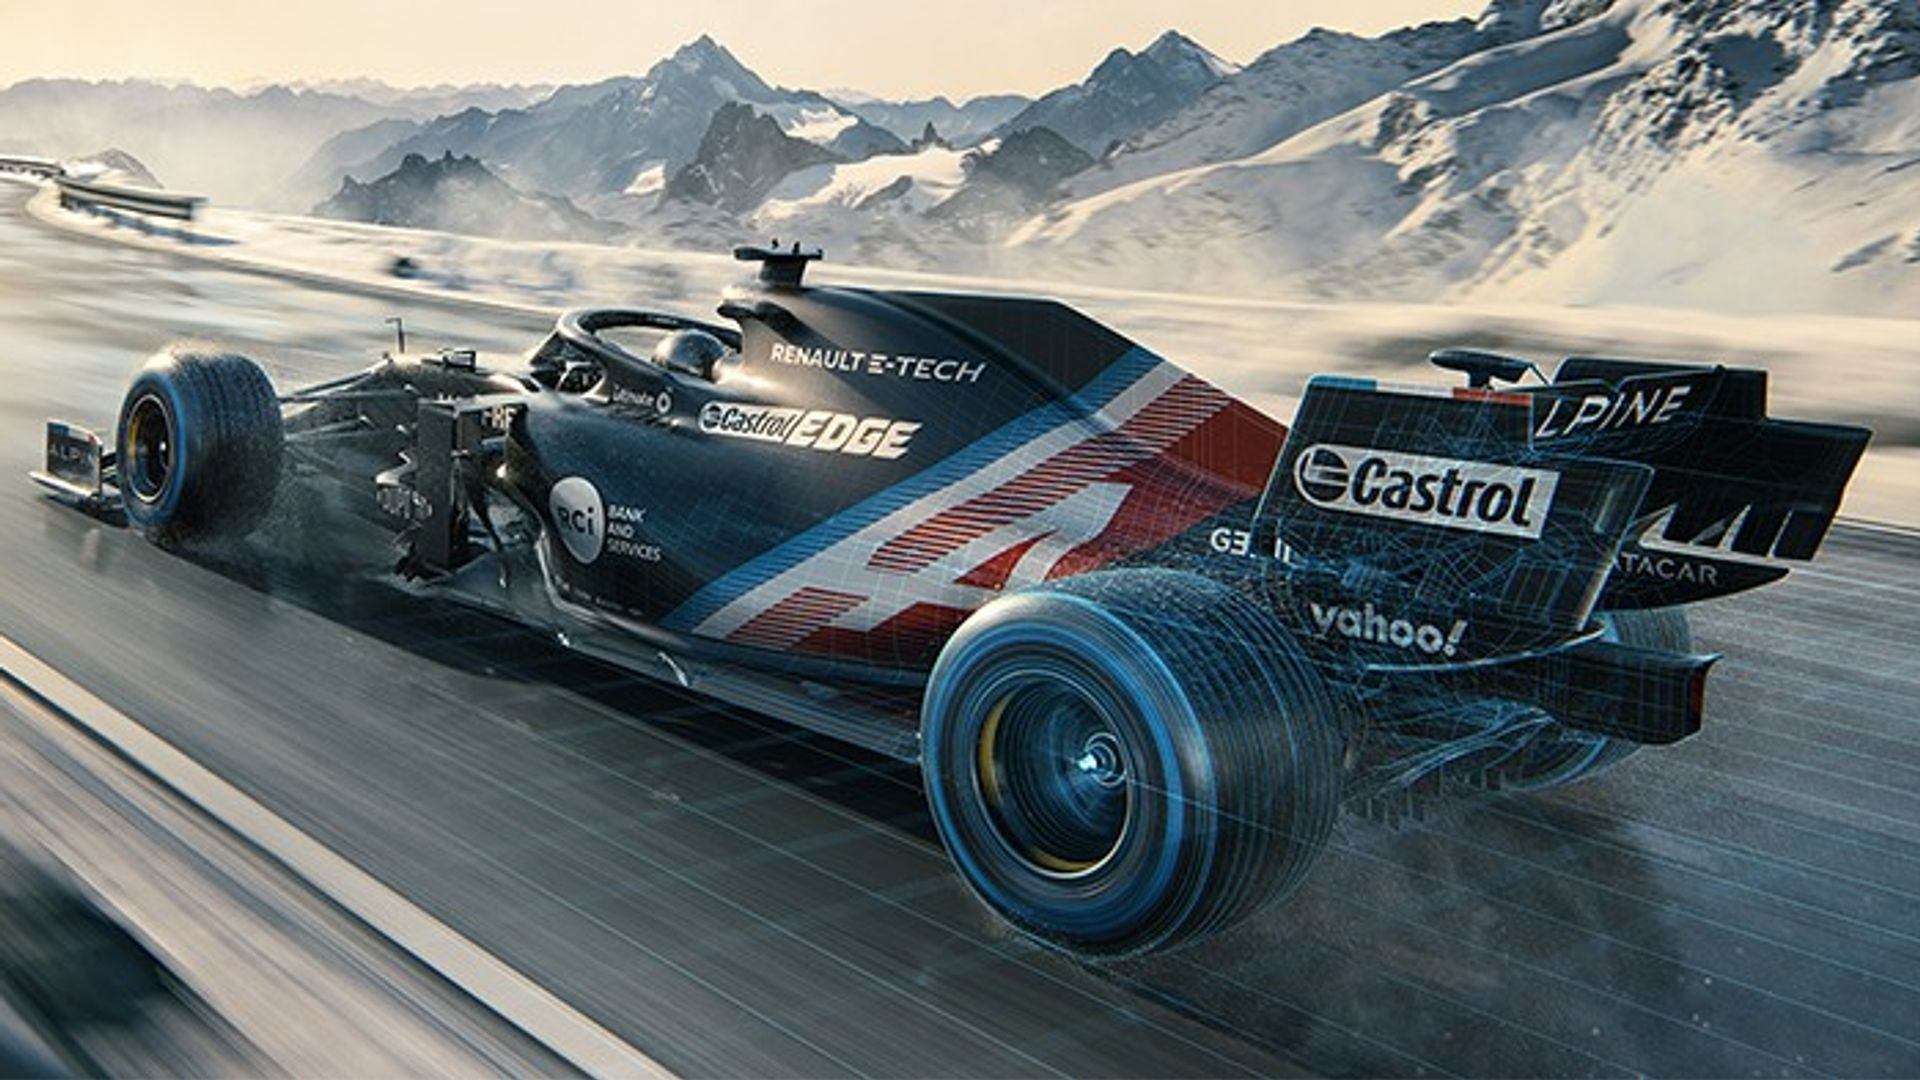 Renault reveal first look at Alpine F1 livery